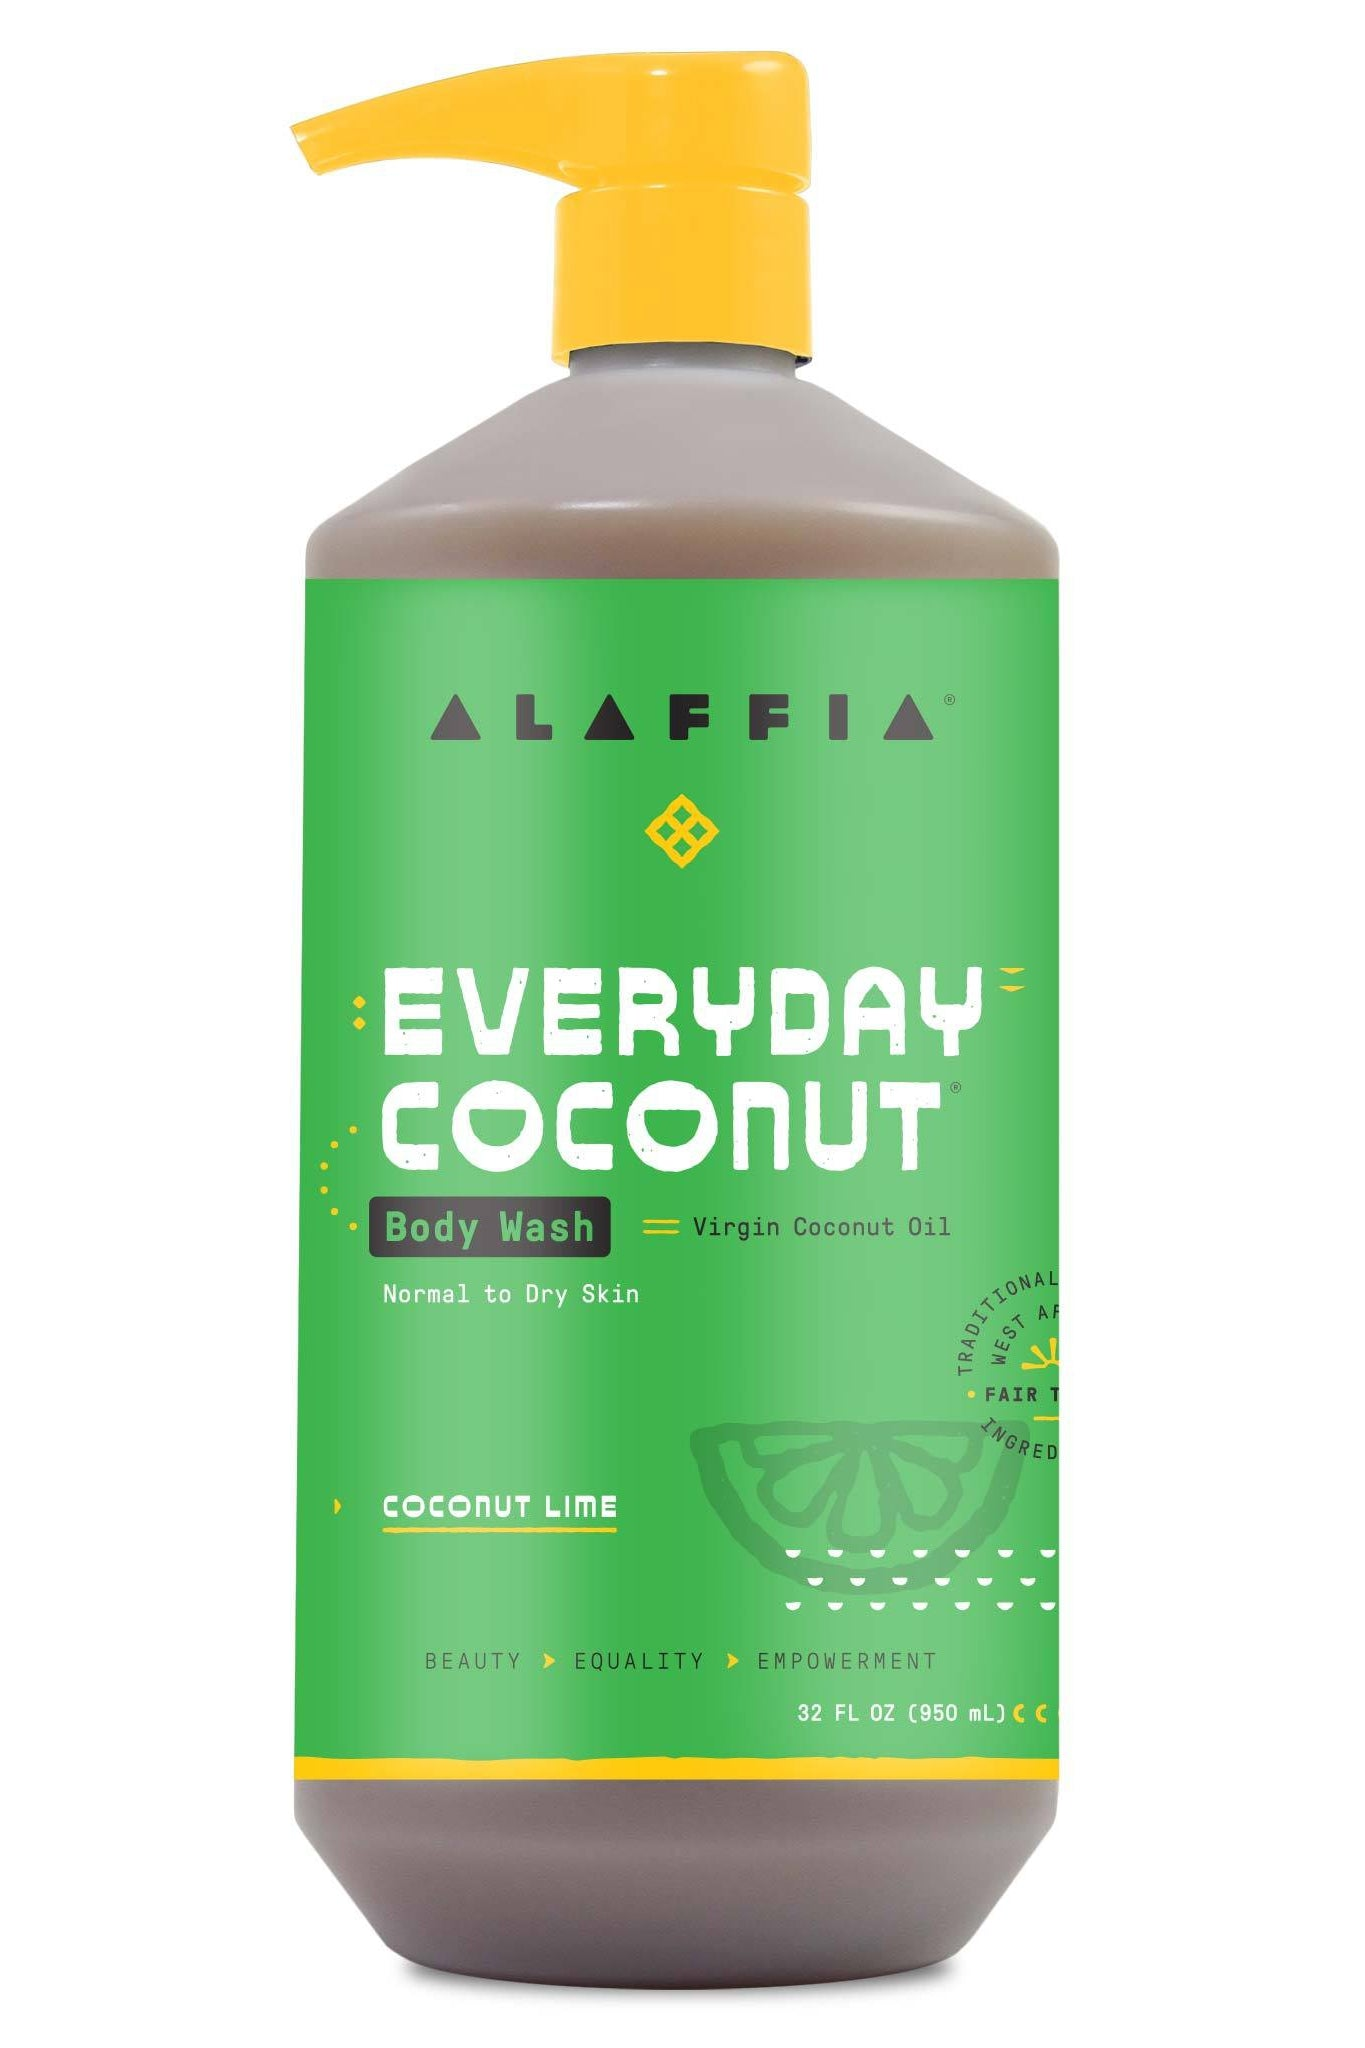 Alaffia Everyday Coconut Body Wash - Purely Coconut 950 ml